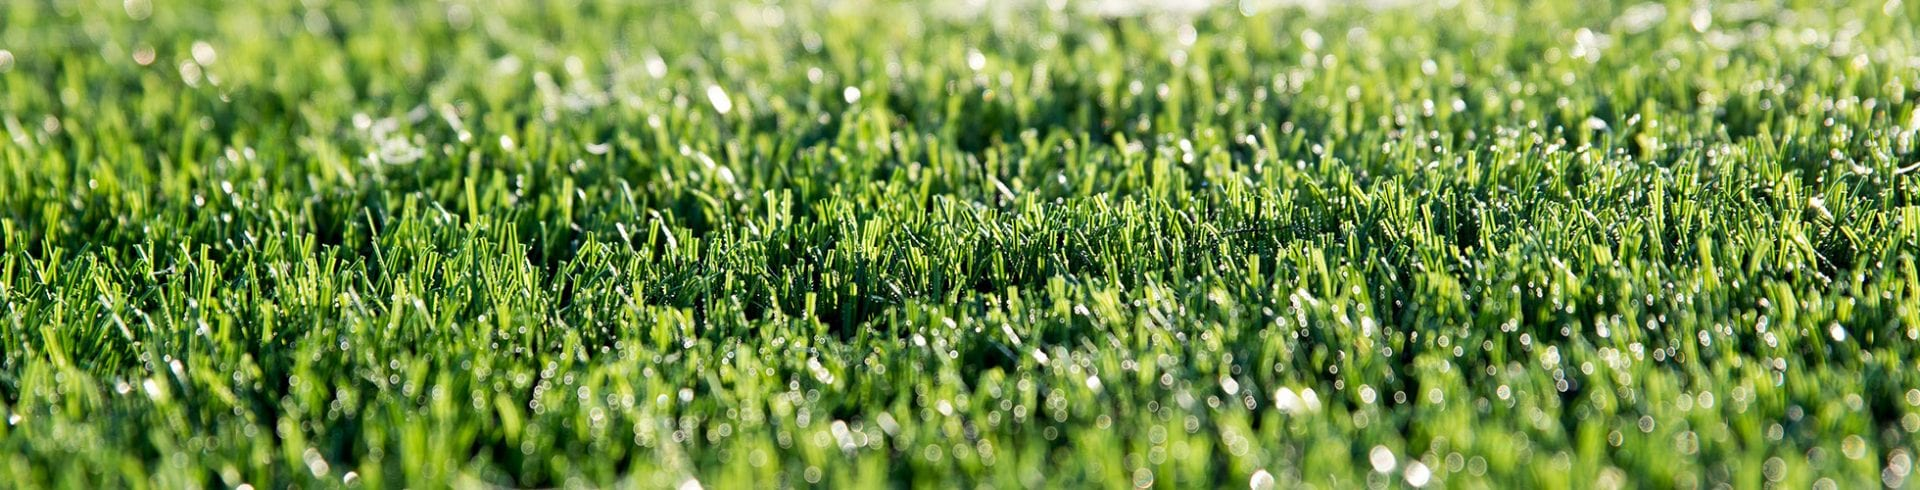 Tips & Tricks: Combat Mold on Artificial Turf | Blog | Mold Off®